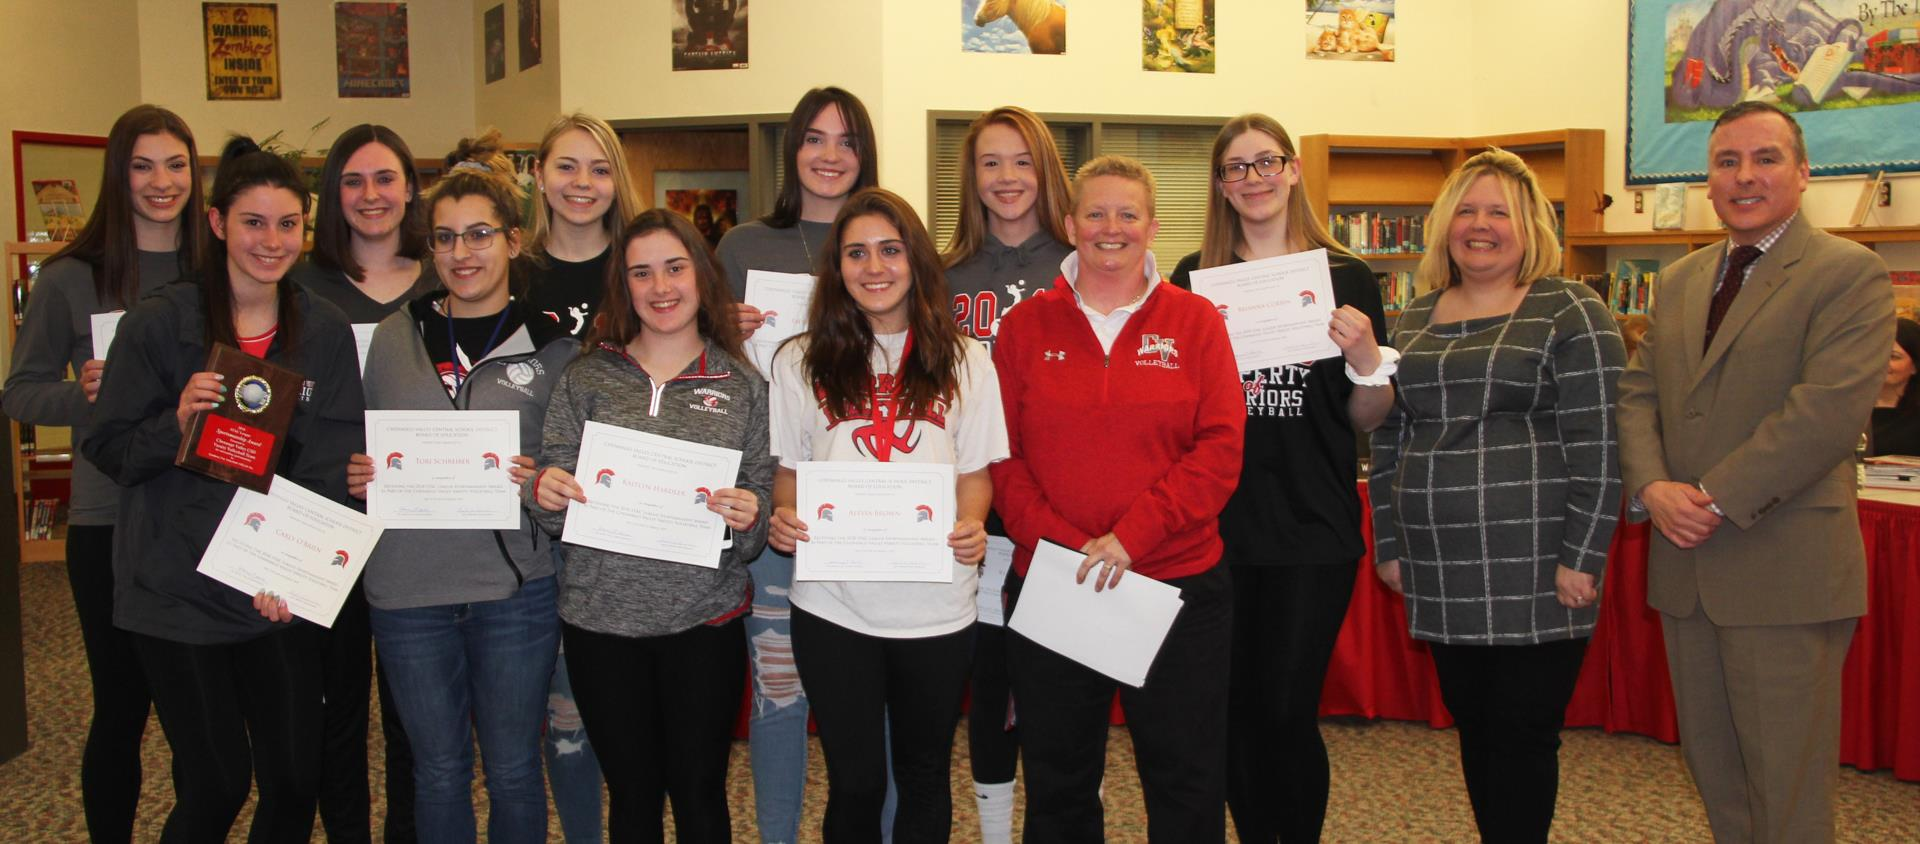 volleyball team being recognized